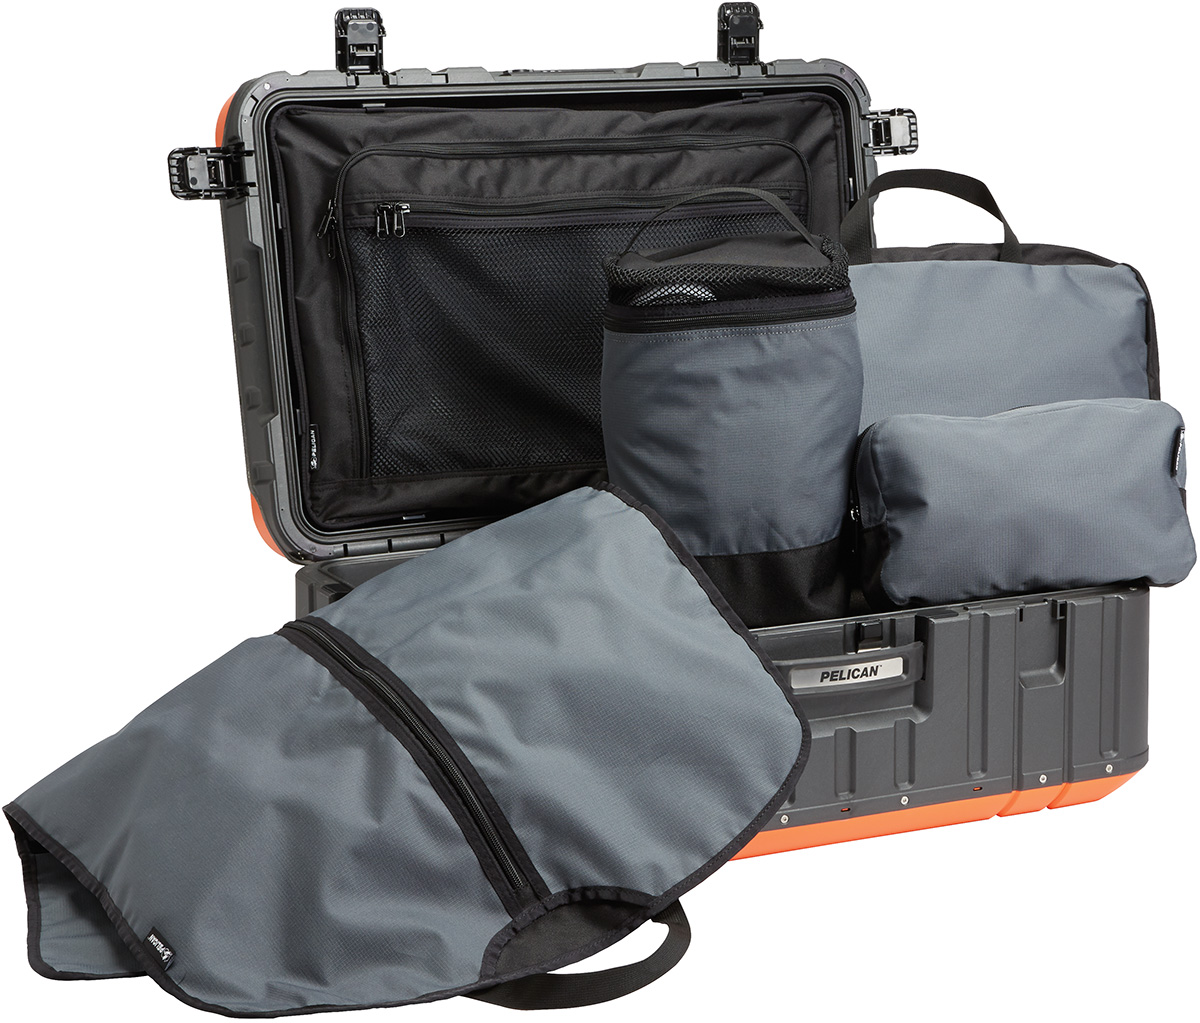 pelican peli products EL27 usa made best protection luggage case